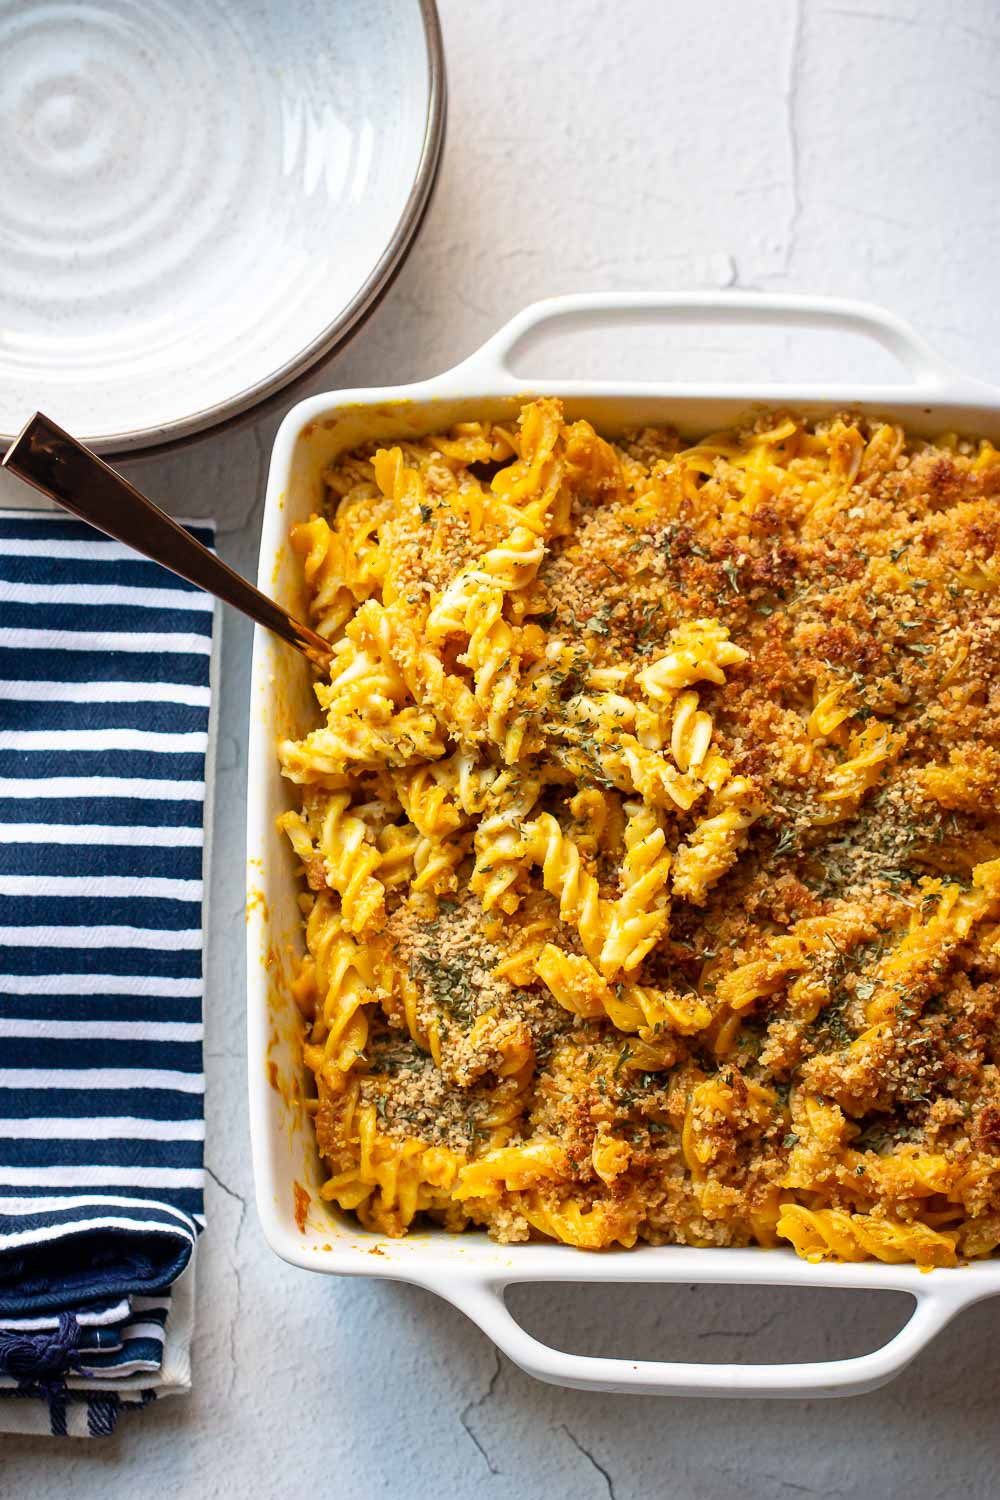 This easy pumpkin mac and cheese recipe is a must-try recipe! Pumpkin puree adds a taste of sweet and savory and creaminess to this cheesy macaroni. The perfect fall dinner!